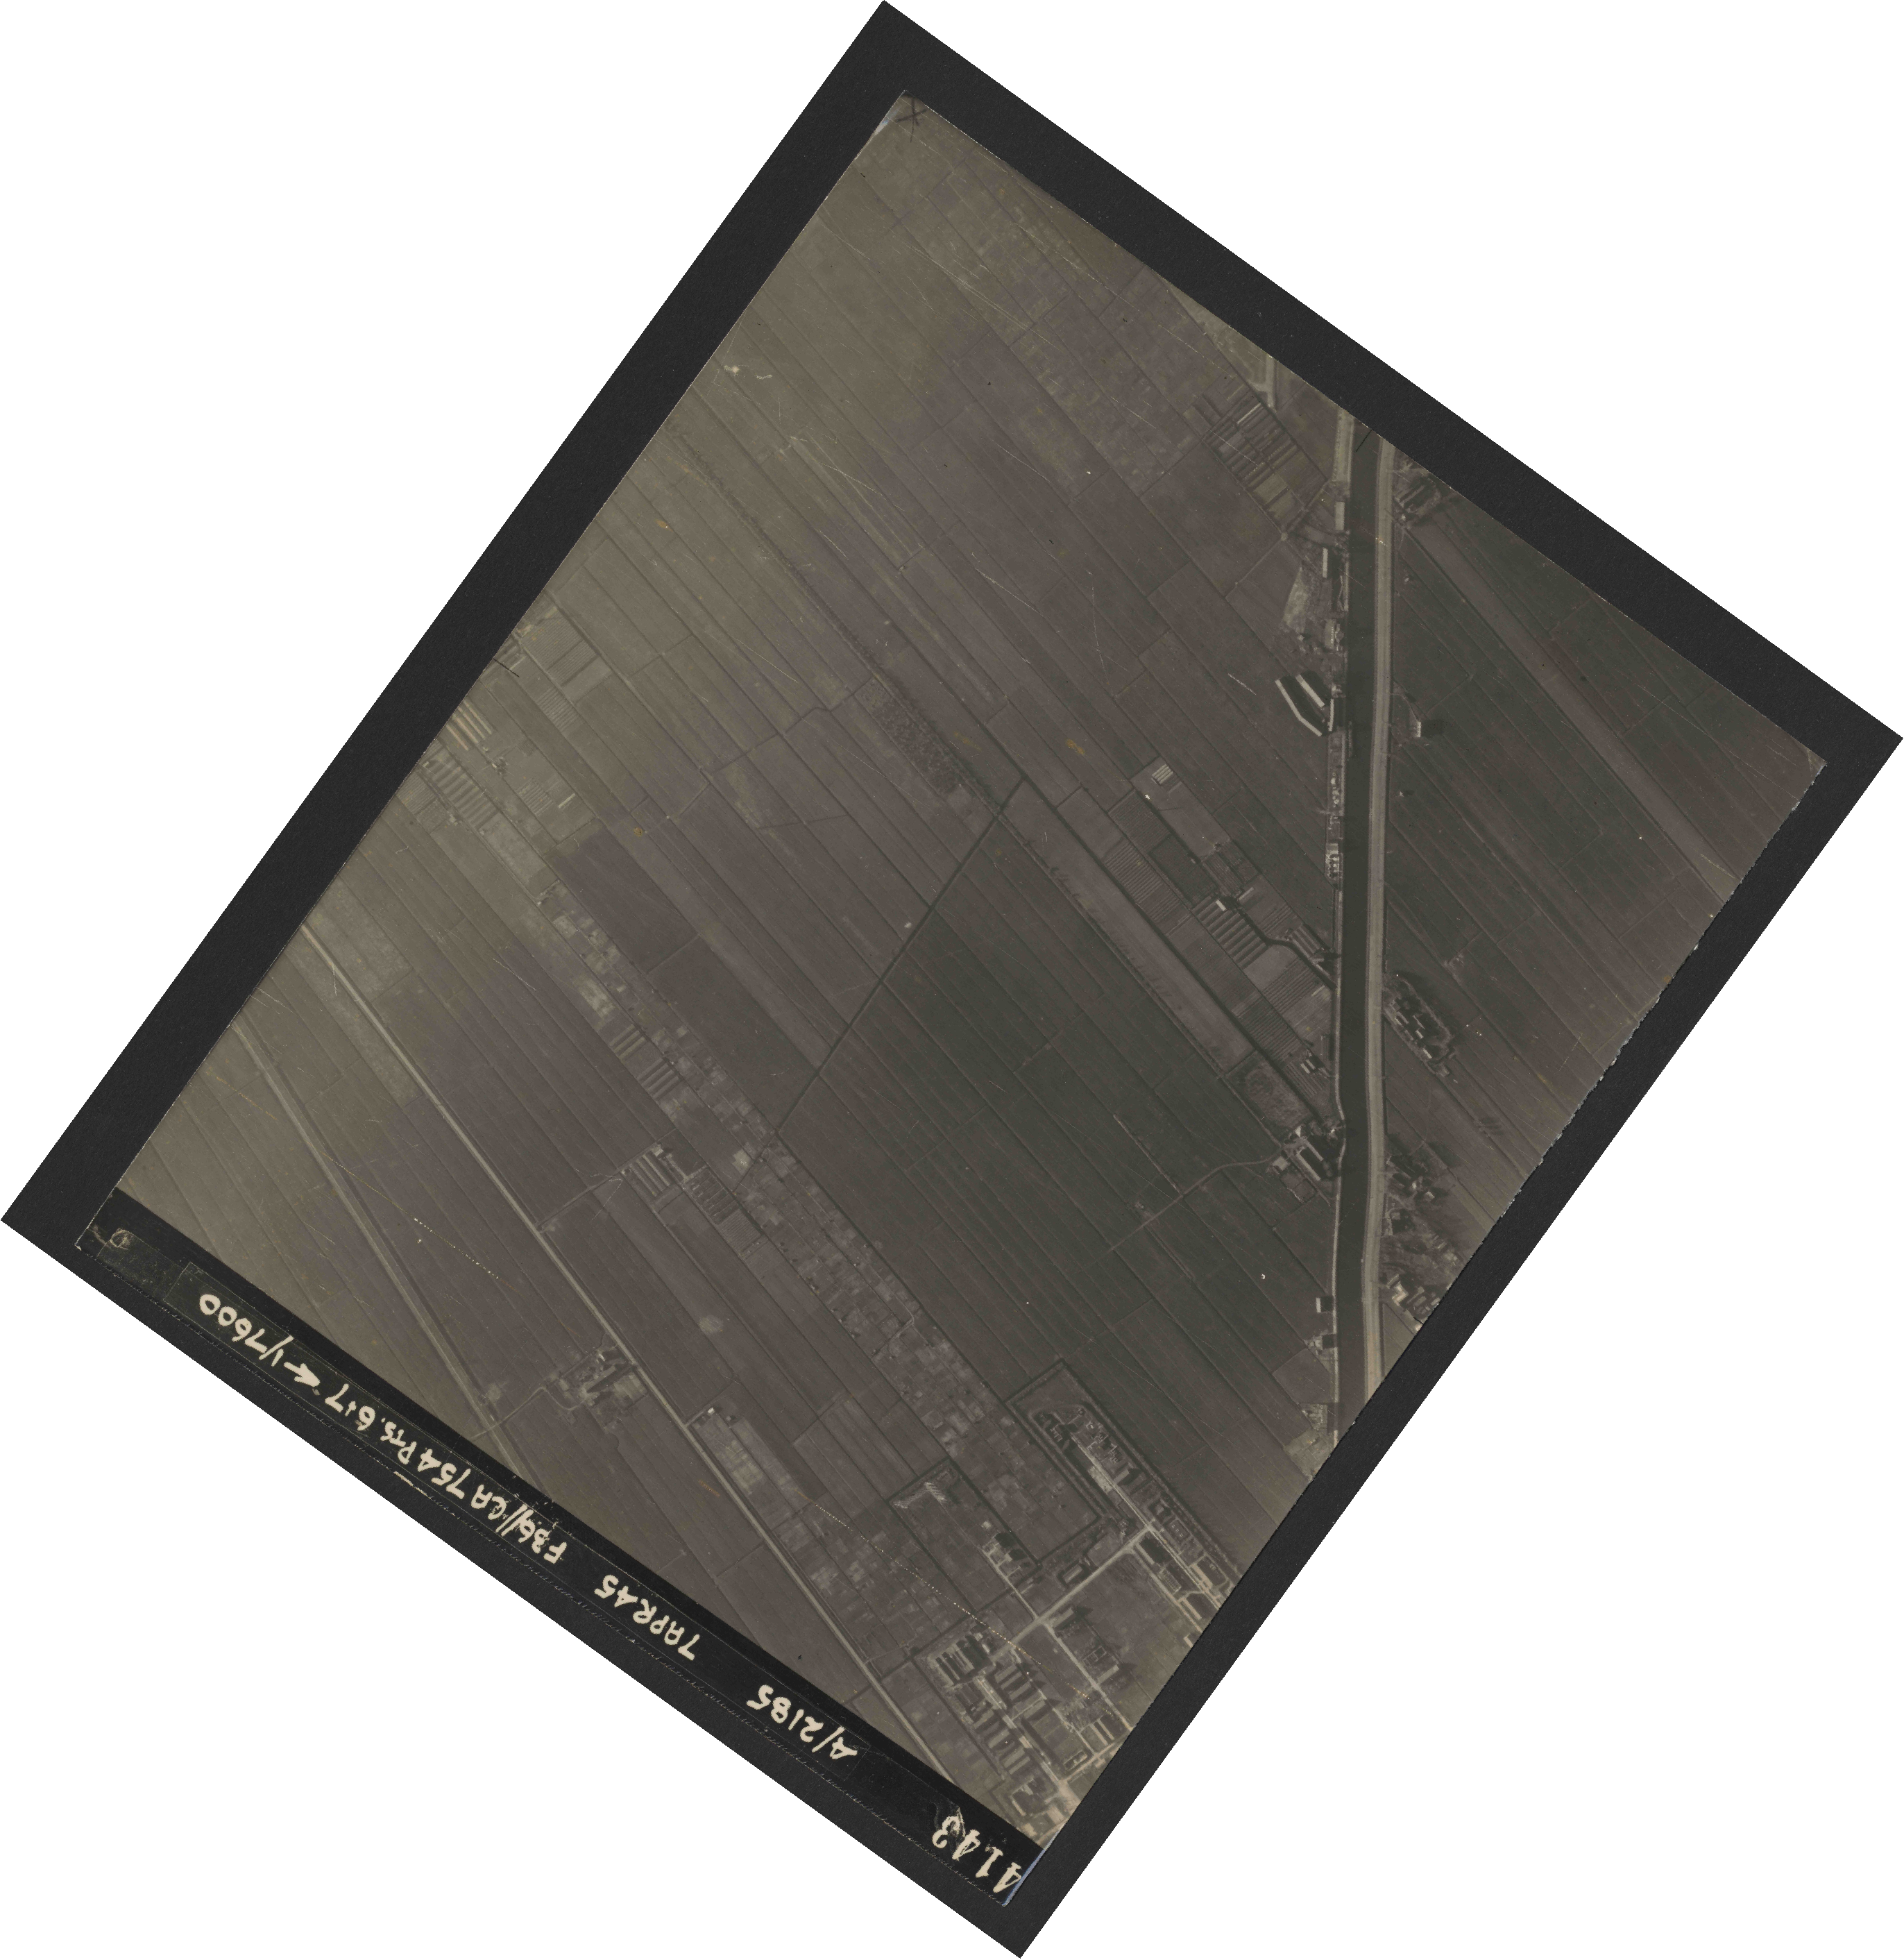 Collection RAF aerial photos 1940-1945 - flight 303, run 13, photo 4143